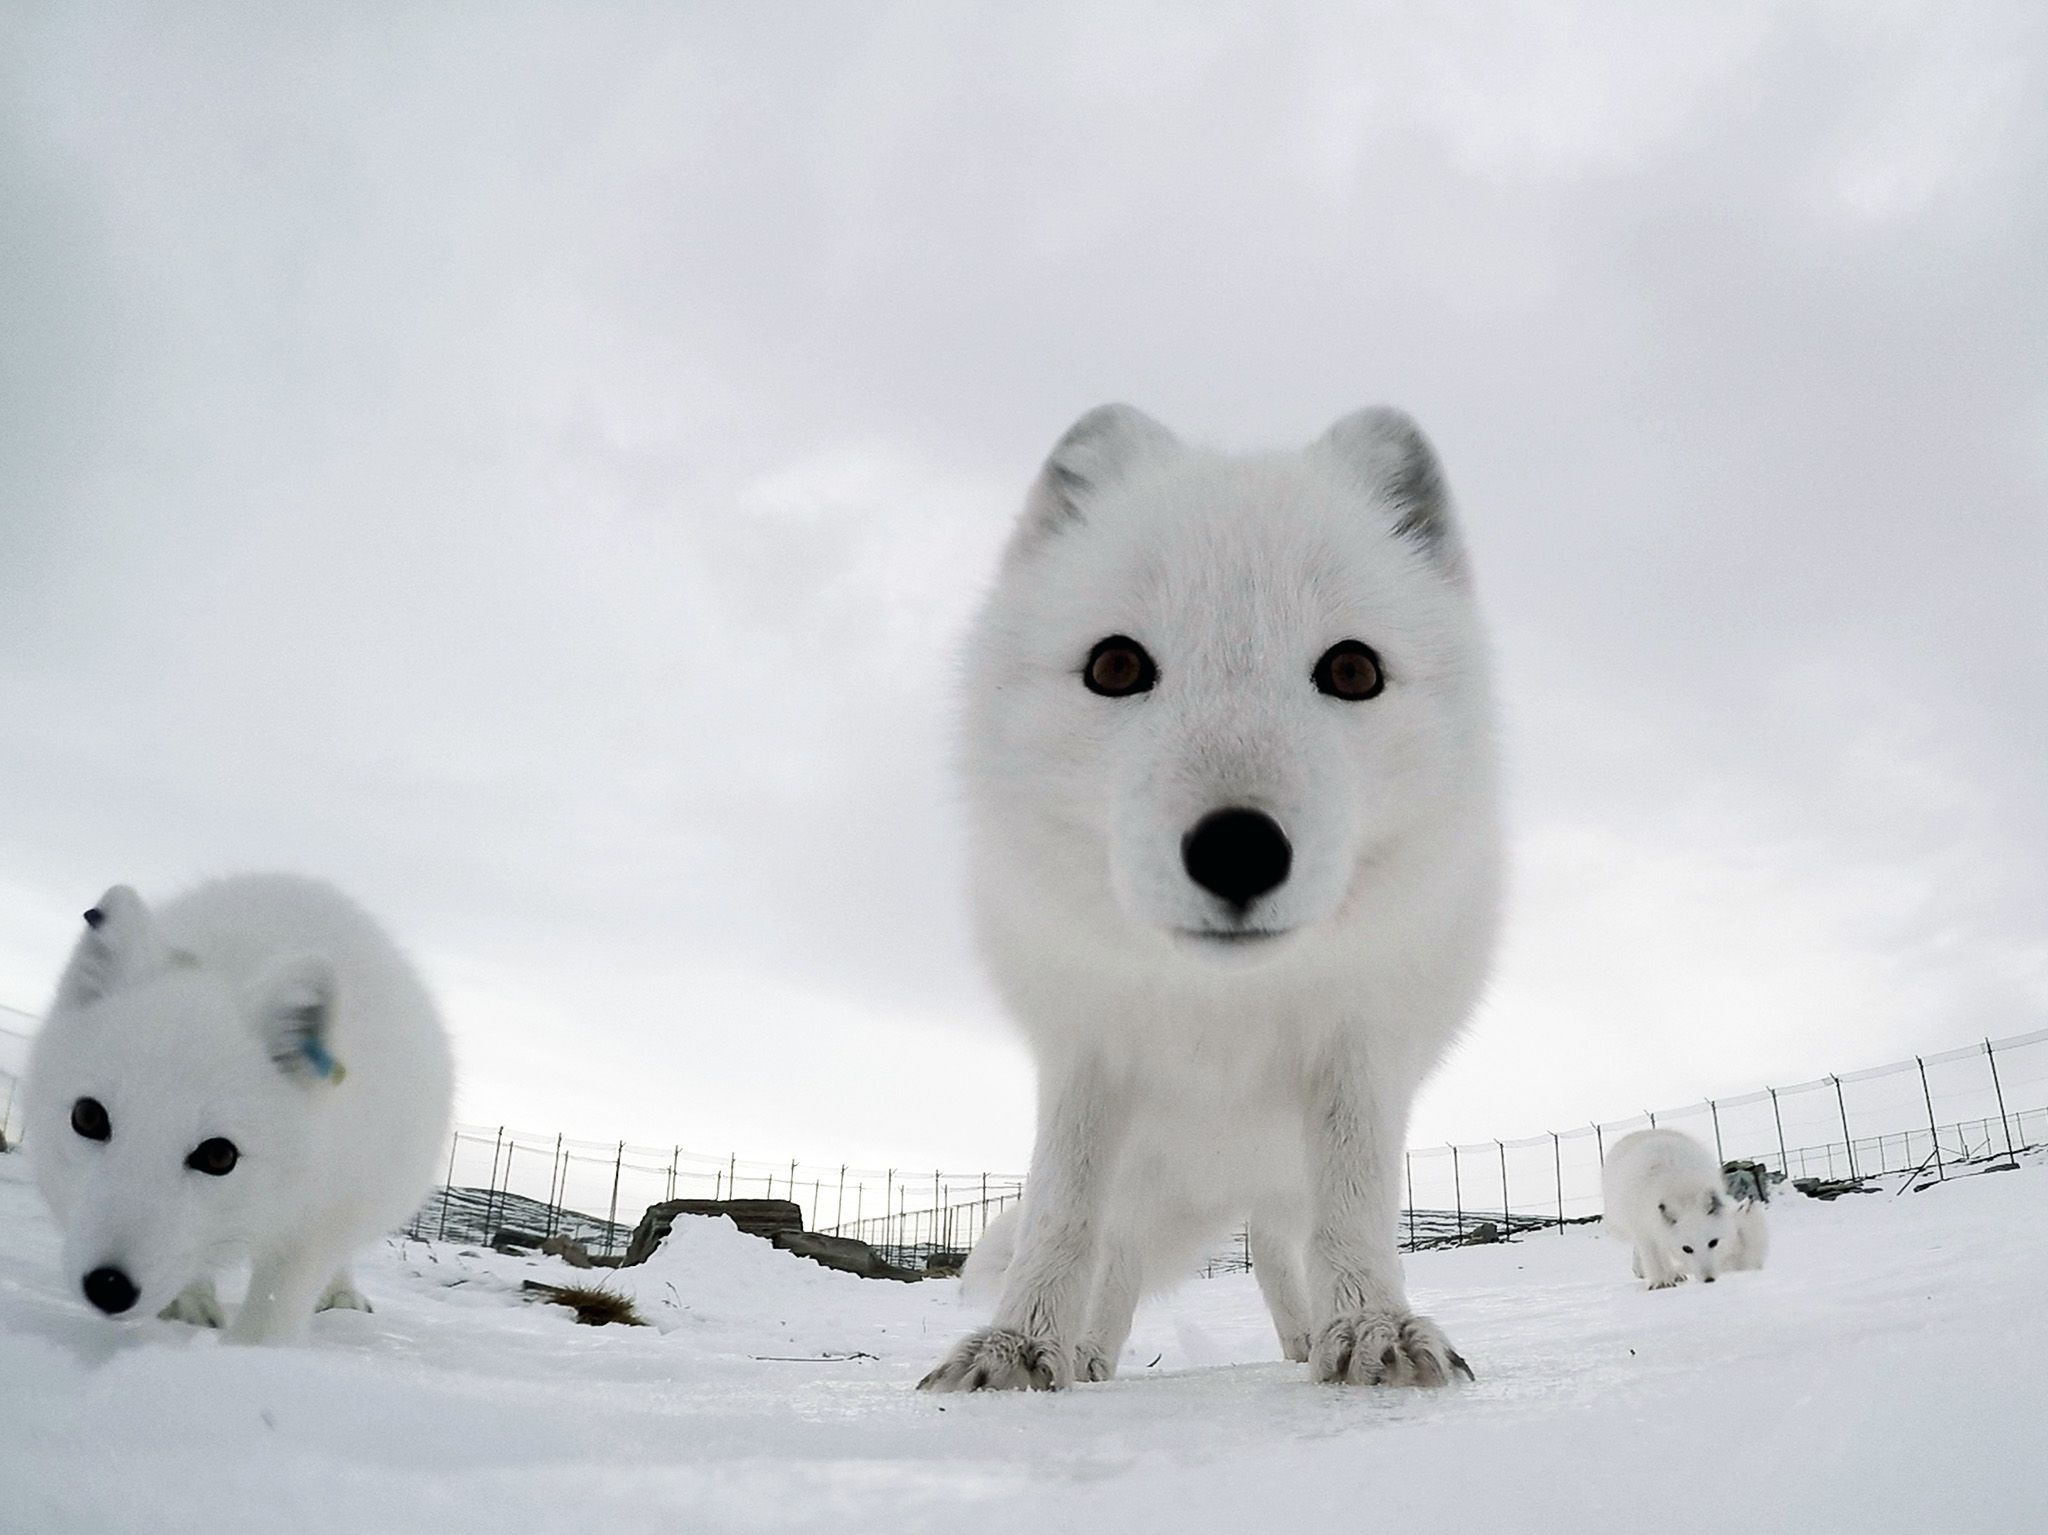 GoPro view of arctic fox in enclosure looking directly at camera. This image is from Wild... [Photo of the day - September 2020]